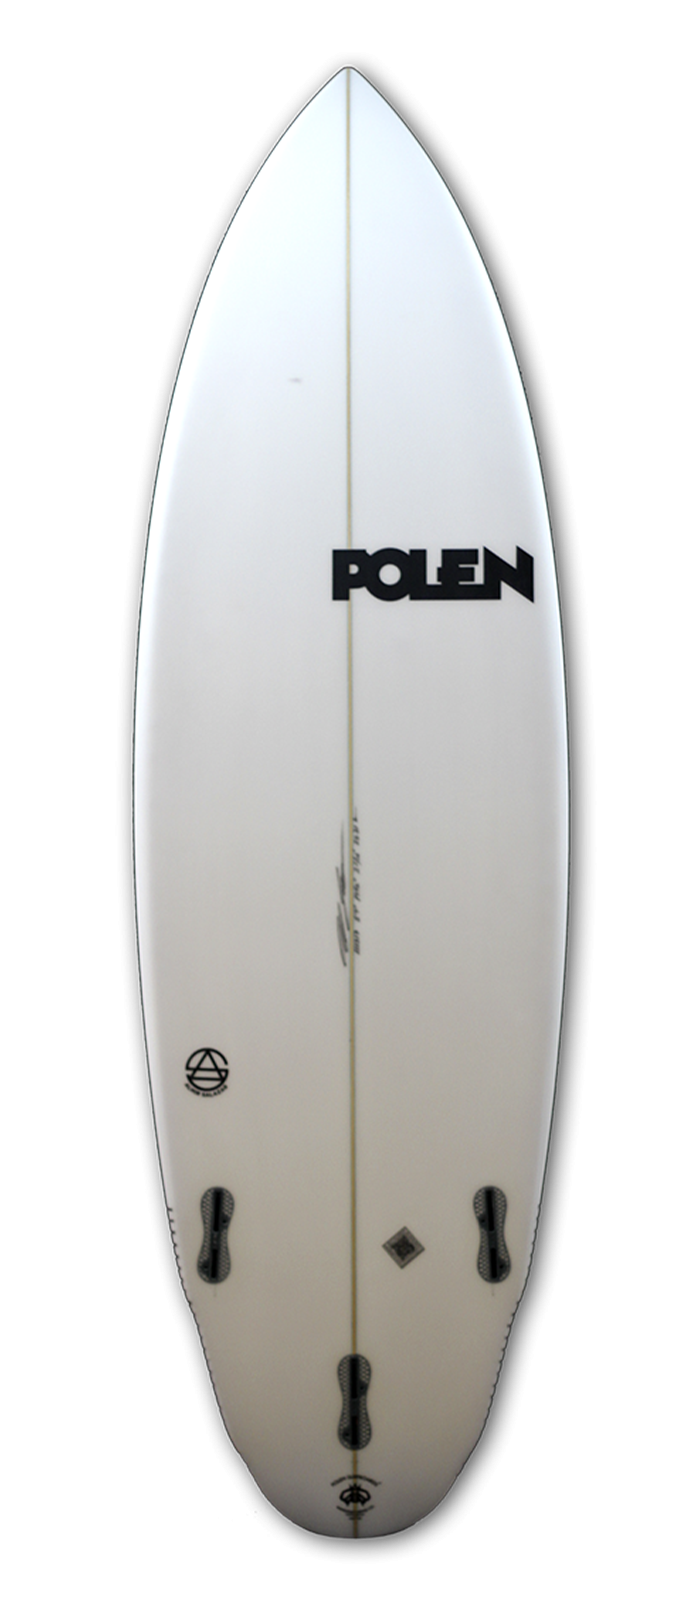 ARION surfboard model bottom